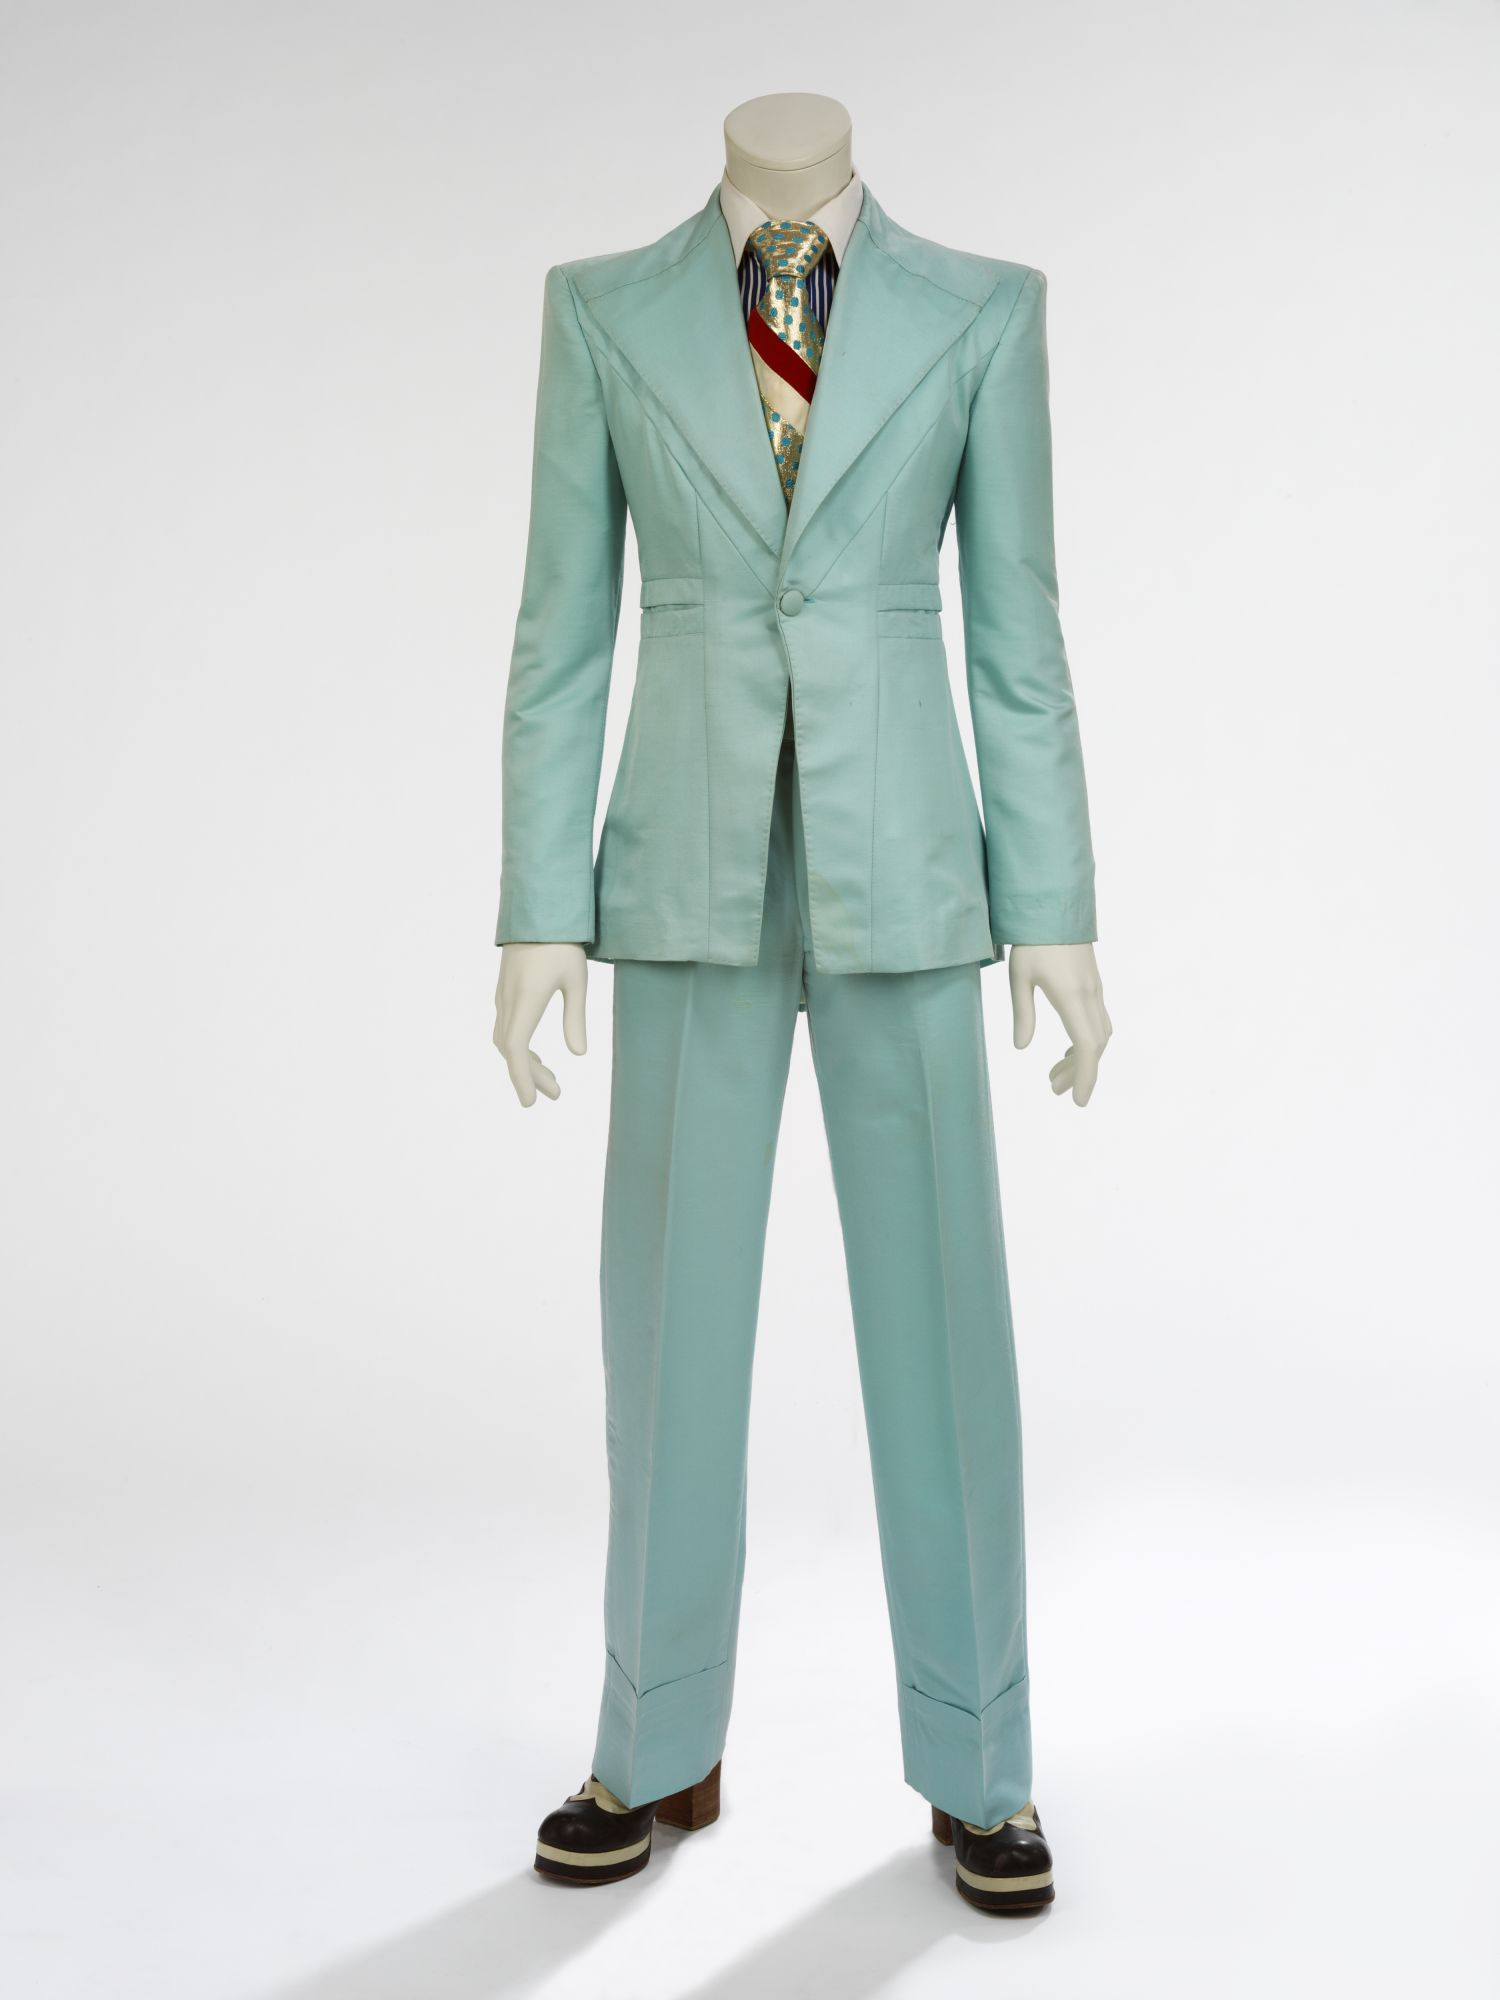 """Ice-blue suit, 1972. Designed by Freddie Burretti for the """"Life on Mars?"""" video. Courtesy of The David Bowie Archive. Image © Victoria and Albert Museum"""